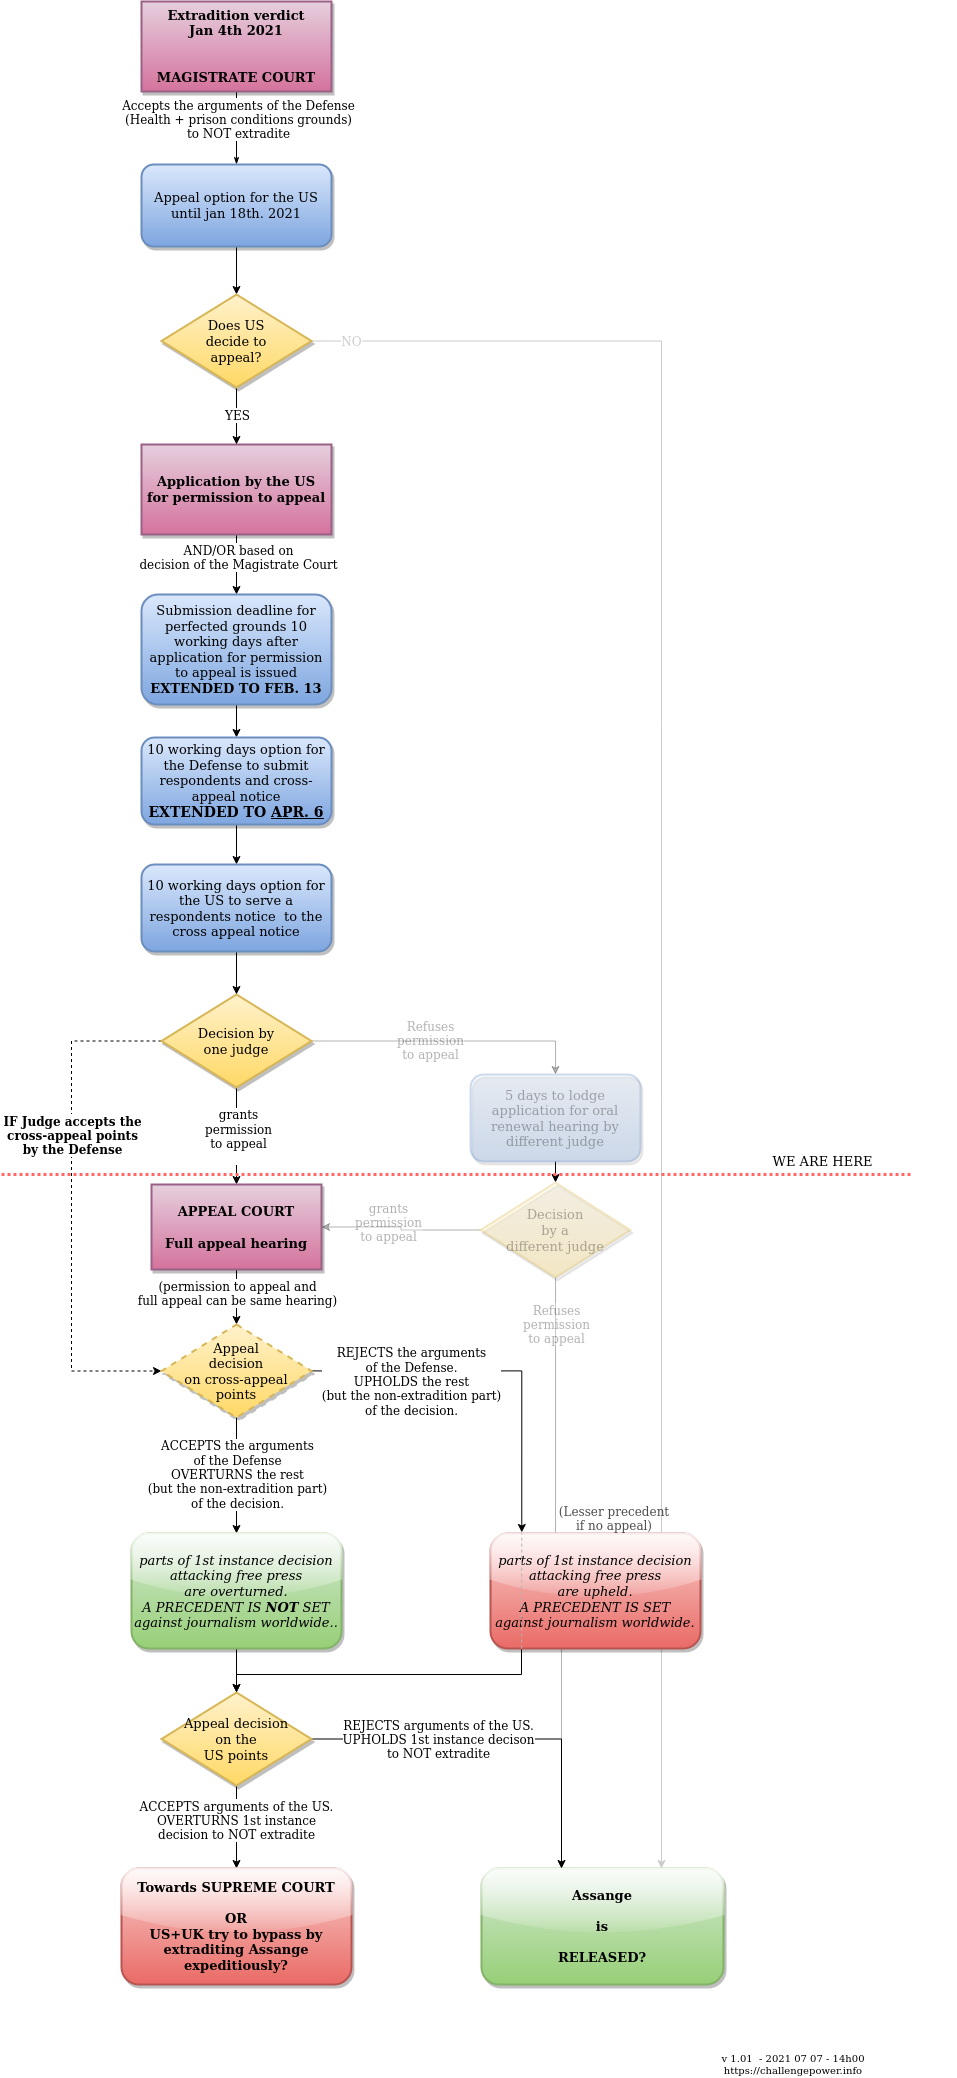 2021-01:next_steps_in_assange_extradition_procedure_after_jan_4th_first_instance_decision_20210707_1405.png